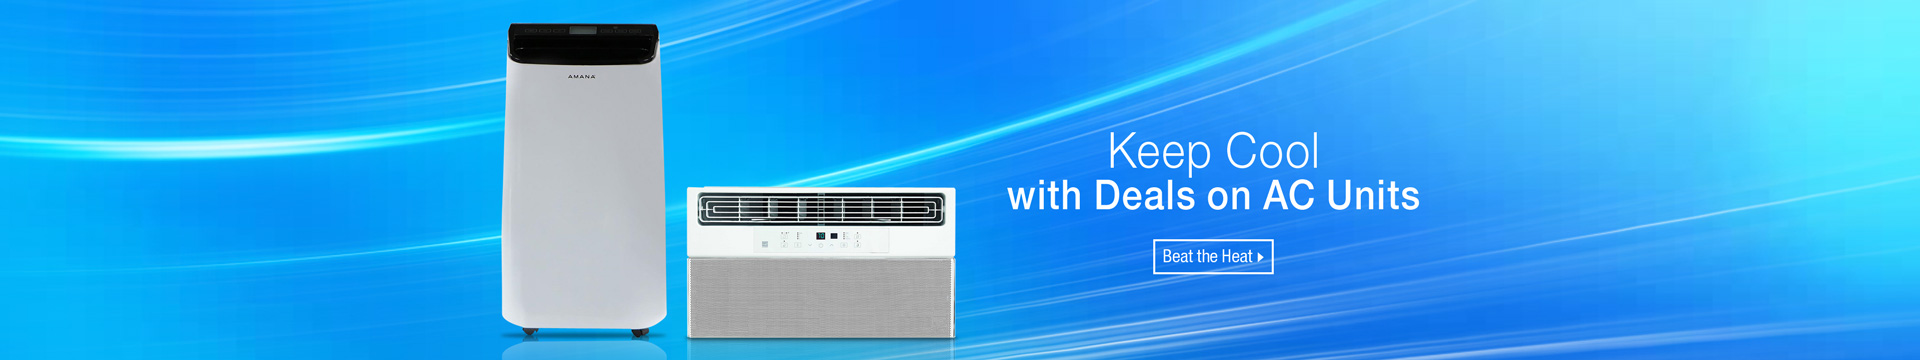 Keep Cool with Deals on AC Units